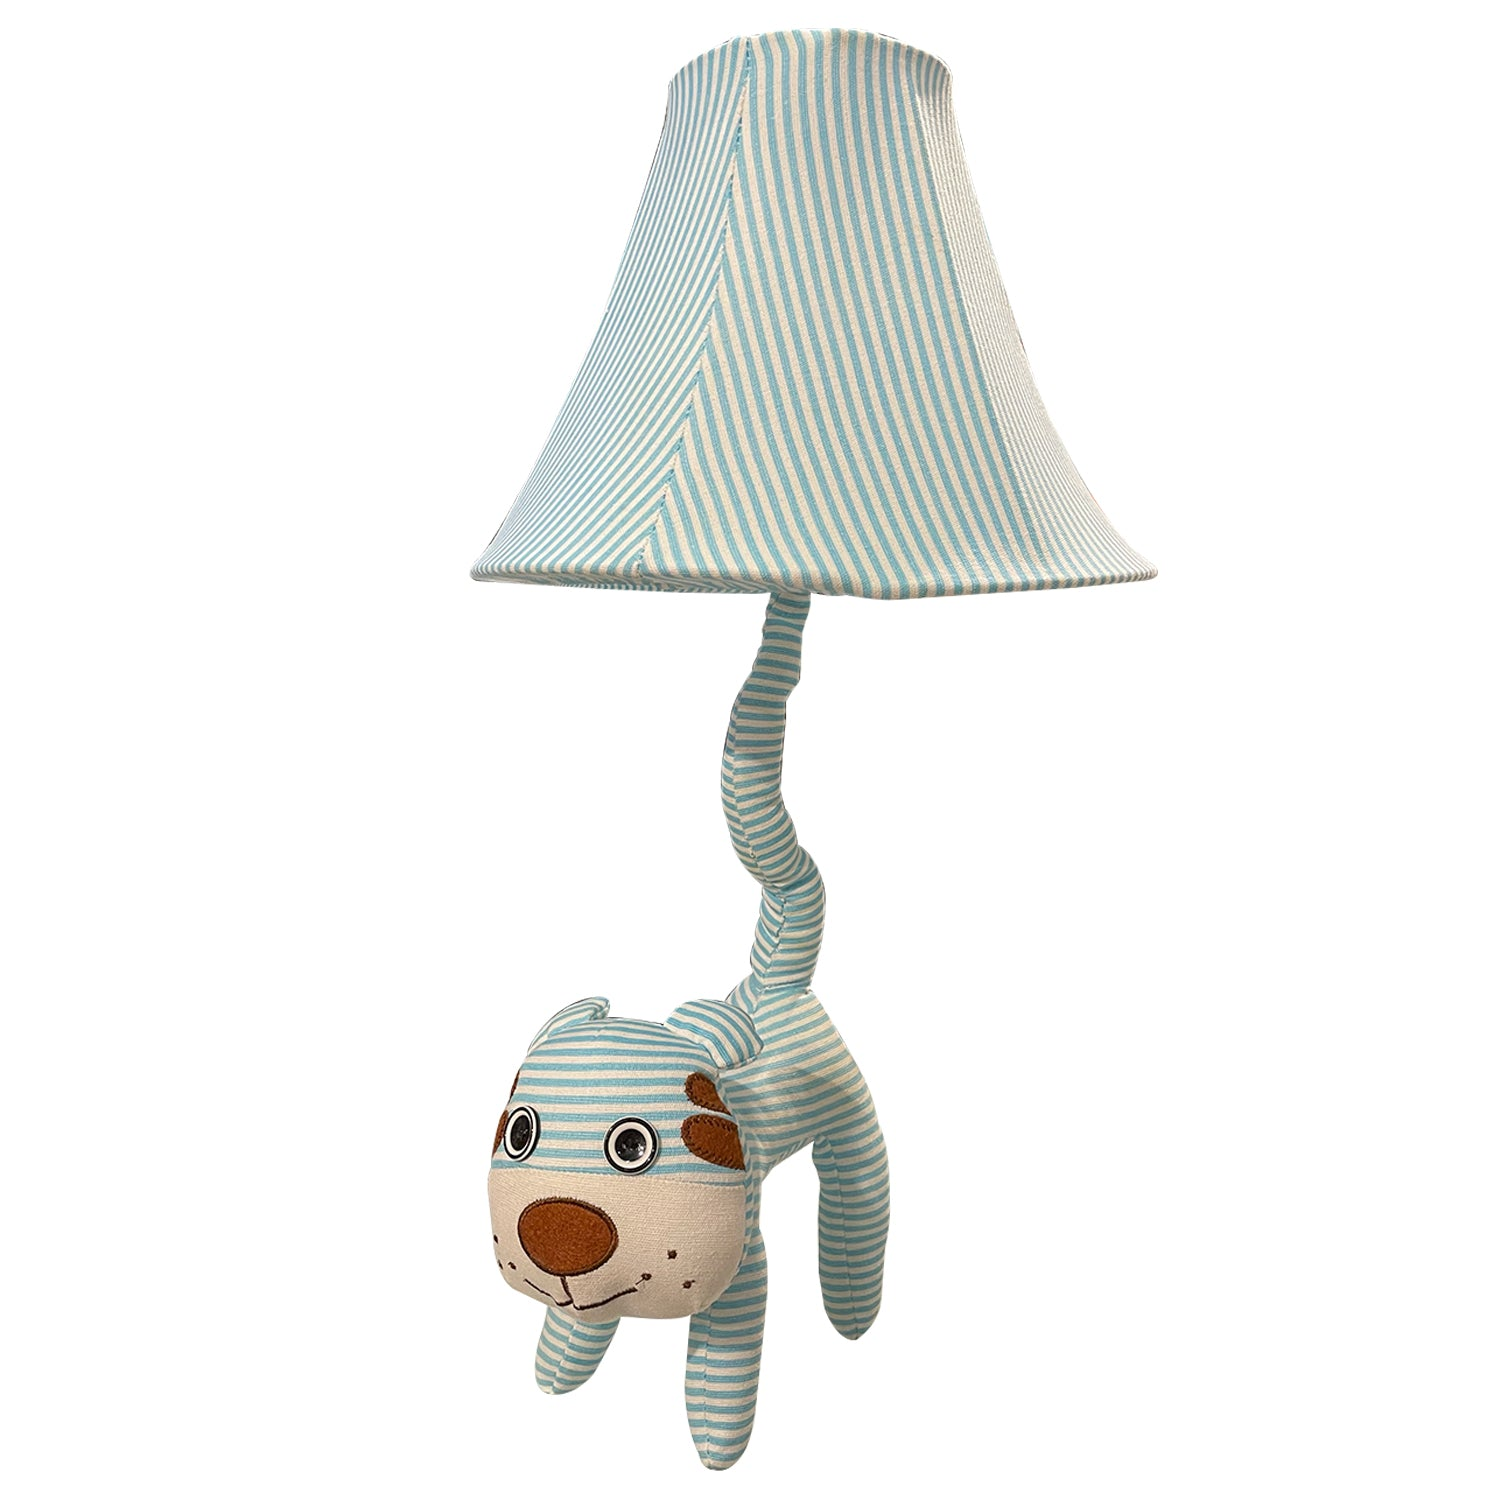 DOG CARTOON CLOTH TABLE LAMP